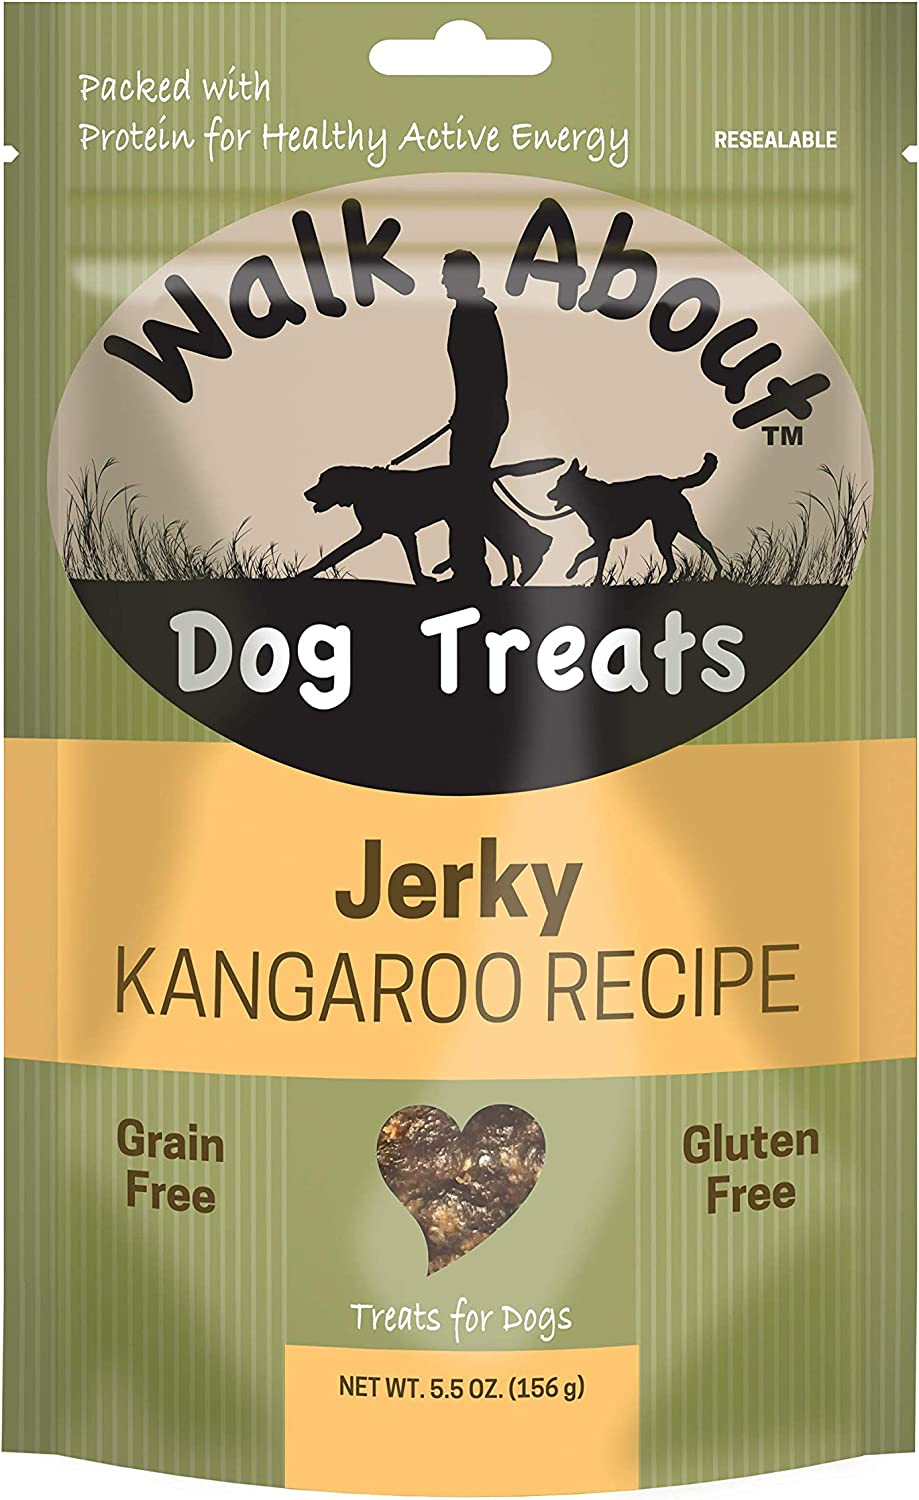 Walk About Pet Dog Jerky Grain-Free New products world's highest National products quality popular Singl Treats Gluten-Free